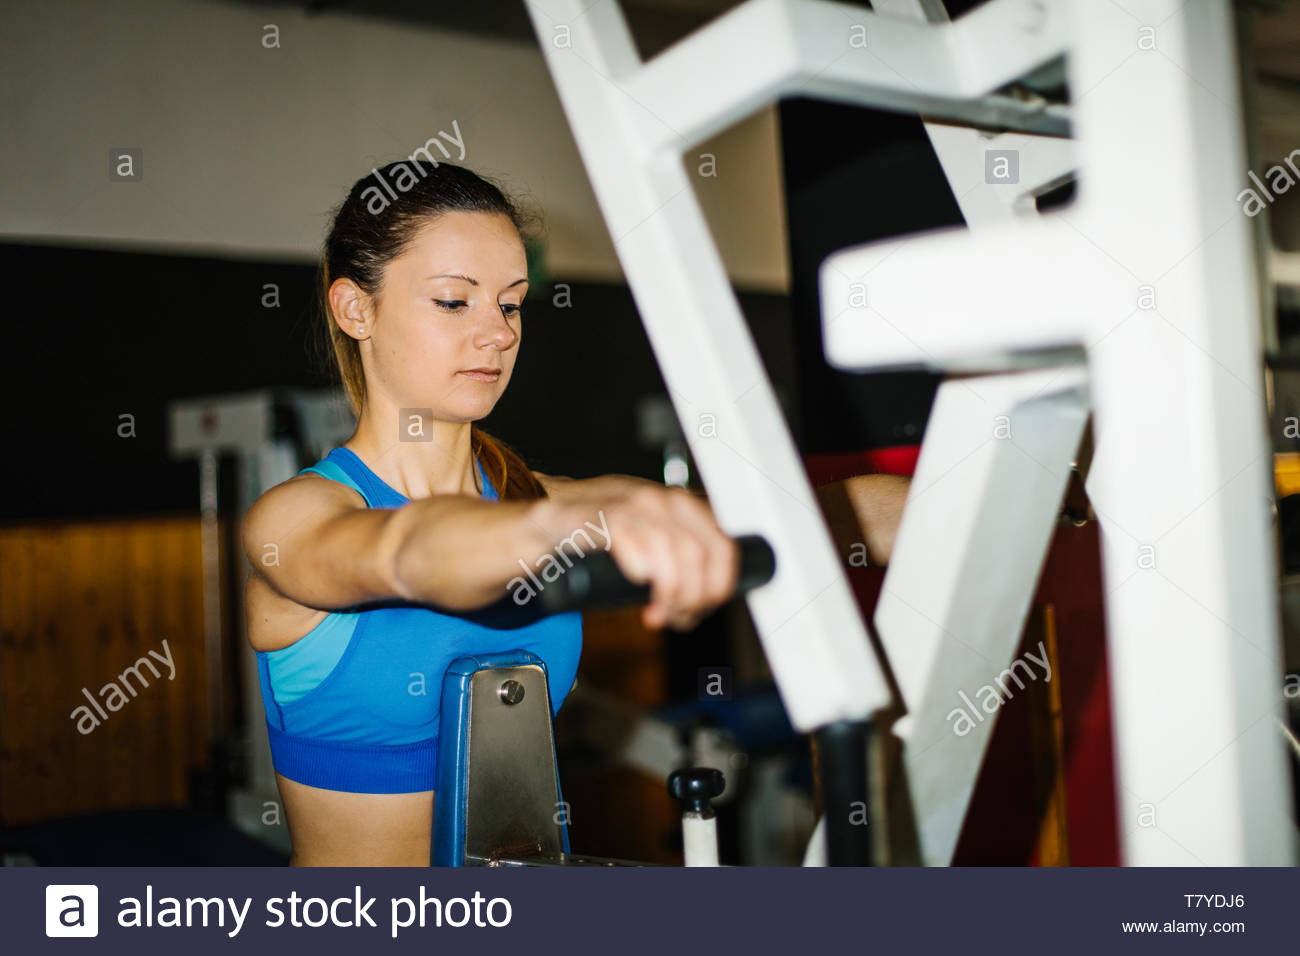 Young fitness woman working out in the gym. Back row exercising. - Stock Image